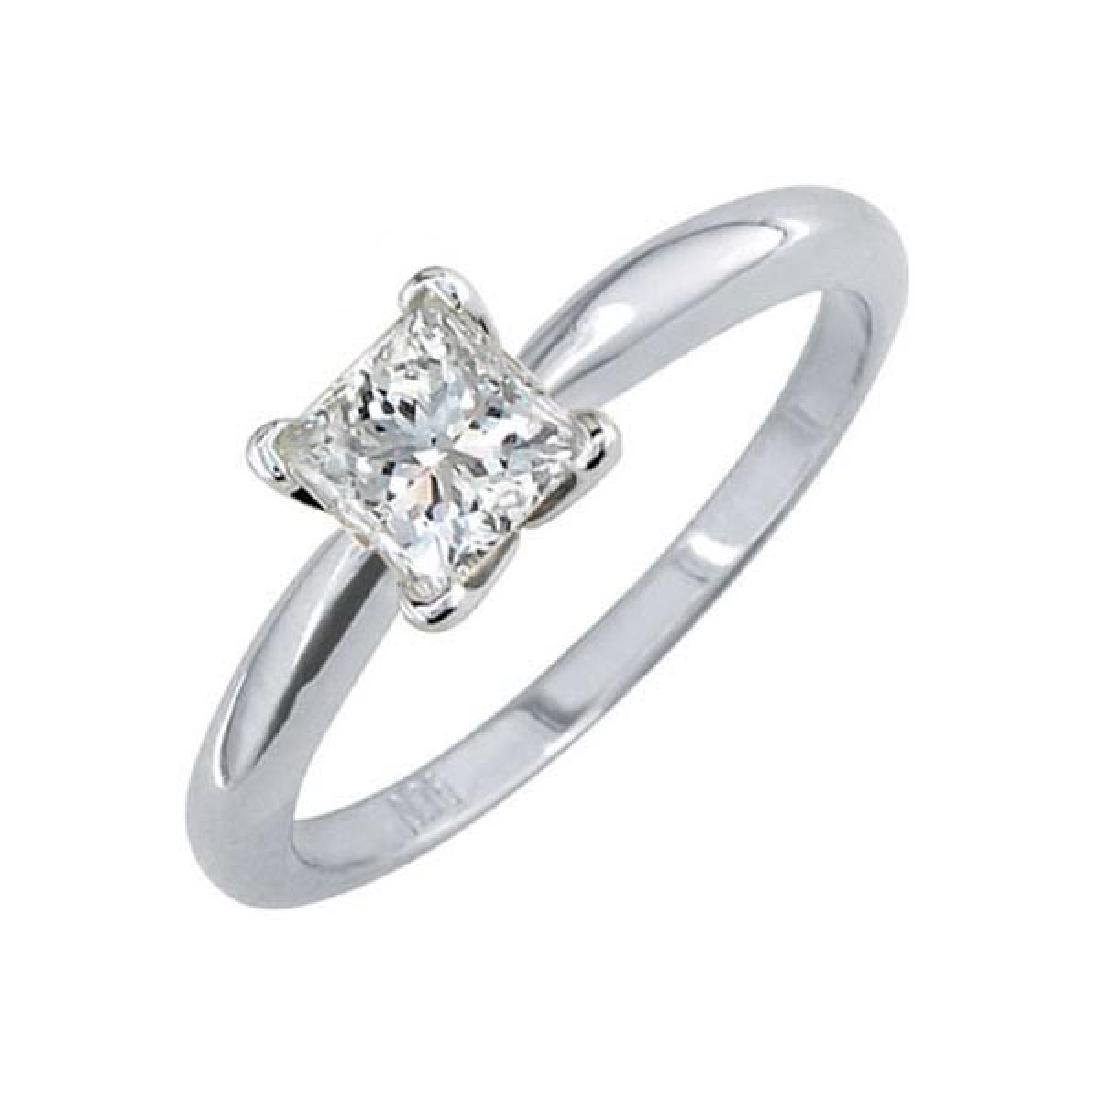 Certified 0.5 CTW Princess Diamond Solitaire 14k Ring F